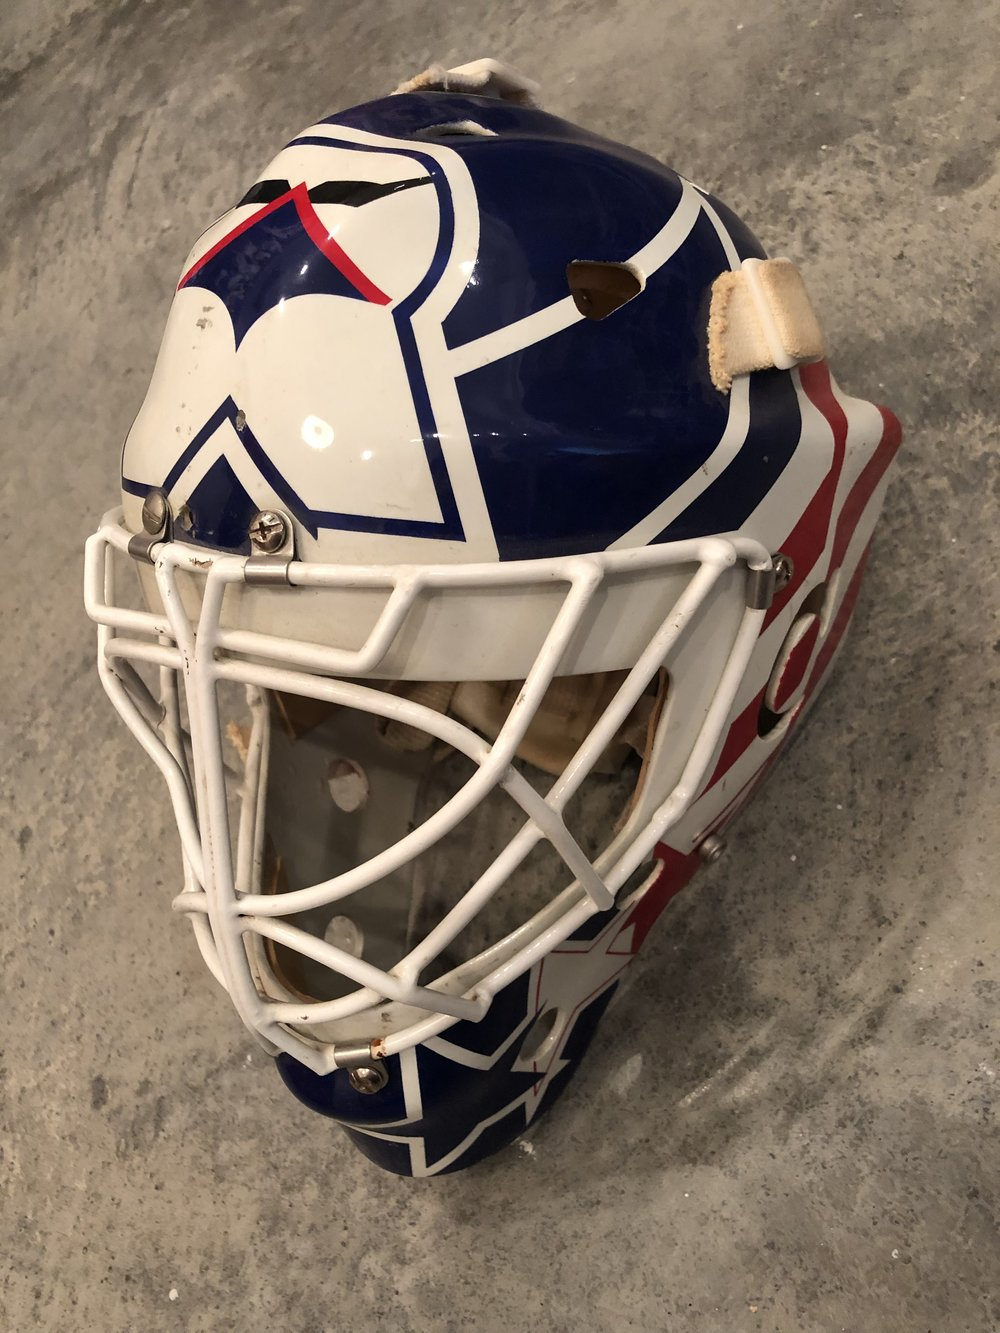 1995-96 Ray LeBlanc US National Team game worn mask   For Sale or trade - $1,800